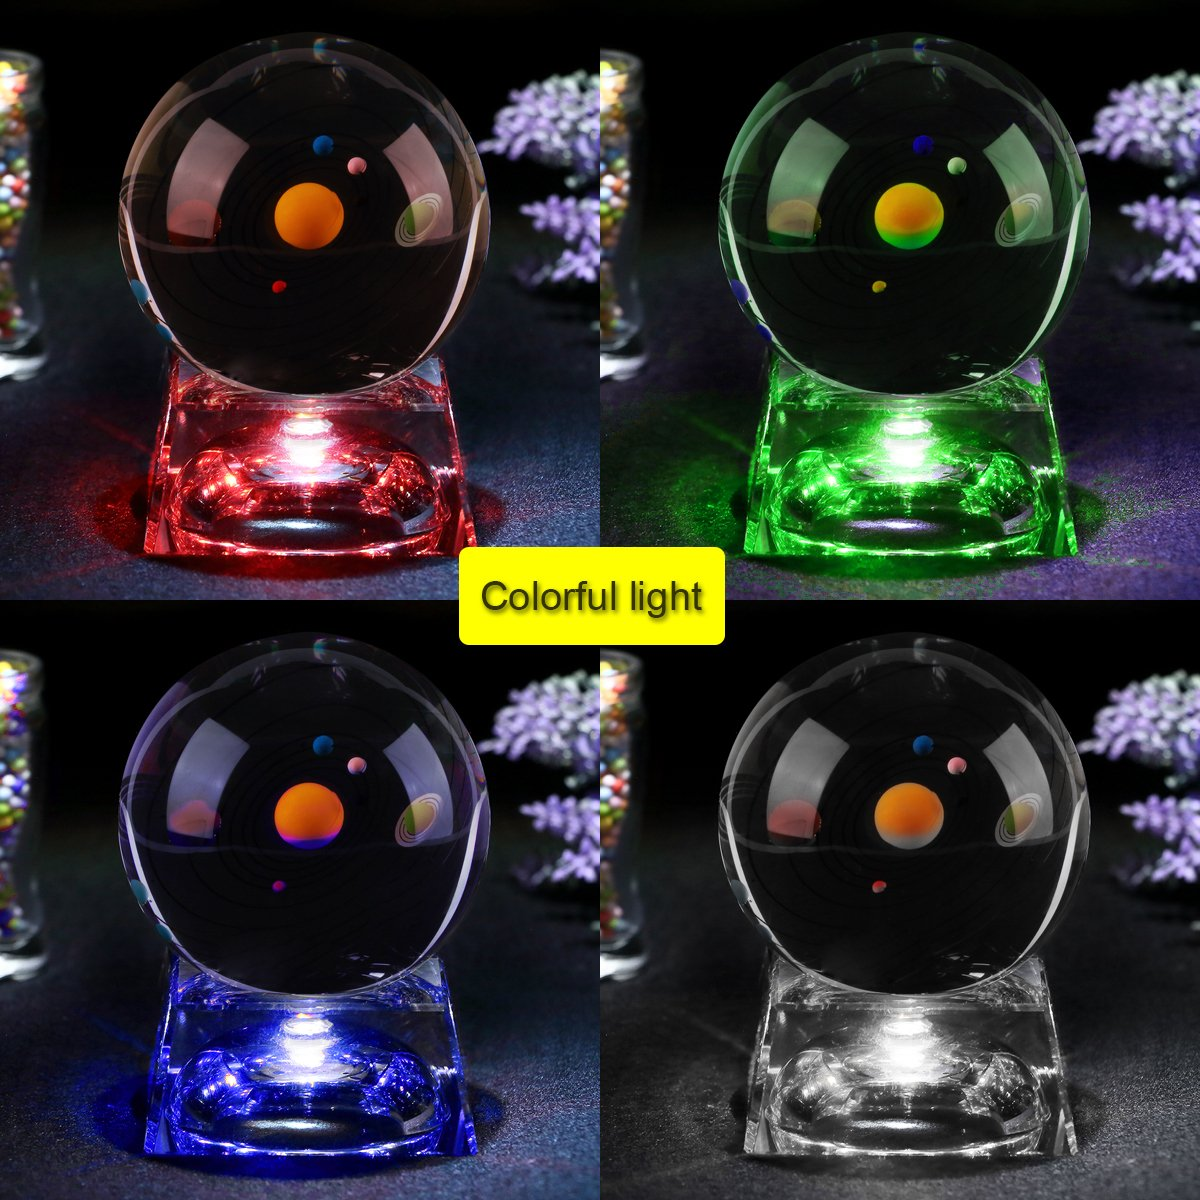 Zulux Solar System Balls - Crystal Ball for Kids with LED Lamp Base, Clear 80mm(3 inch) Glass Sphere for Kids Birthday Gifts, Teacher Gifts,Gift for Anniversary and Boyfriend Birthday by Zulux (Image #2)